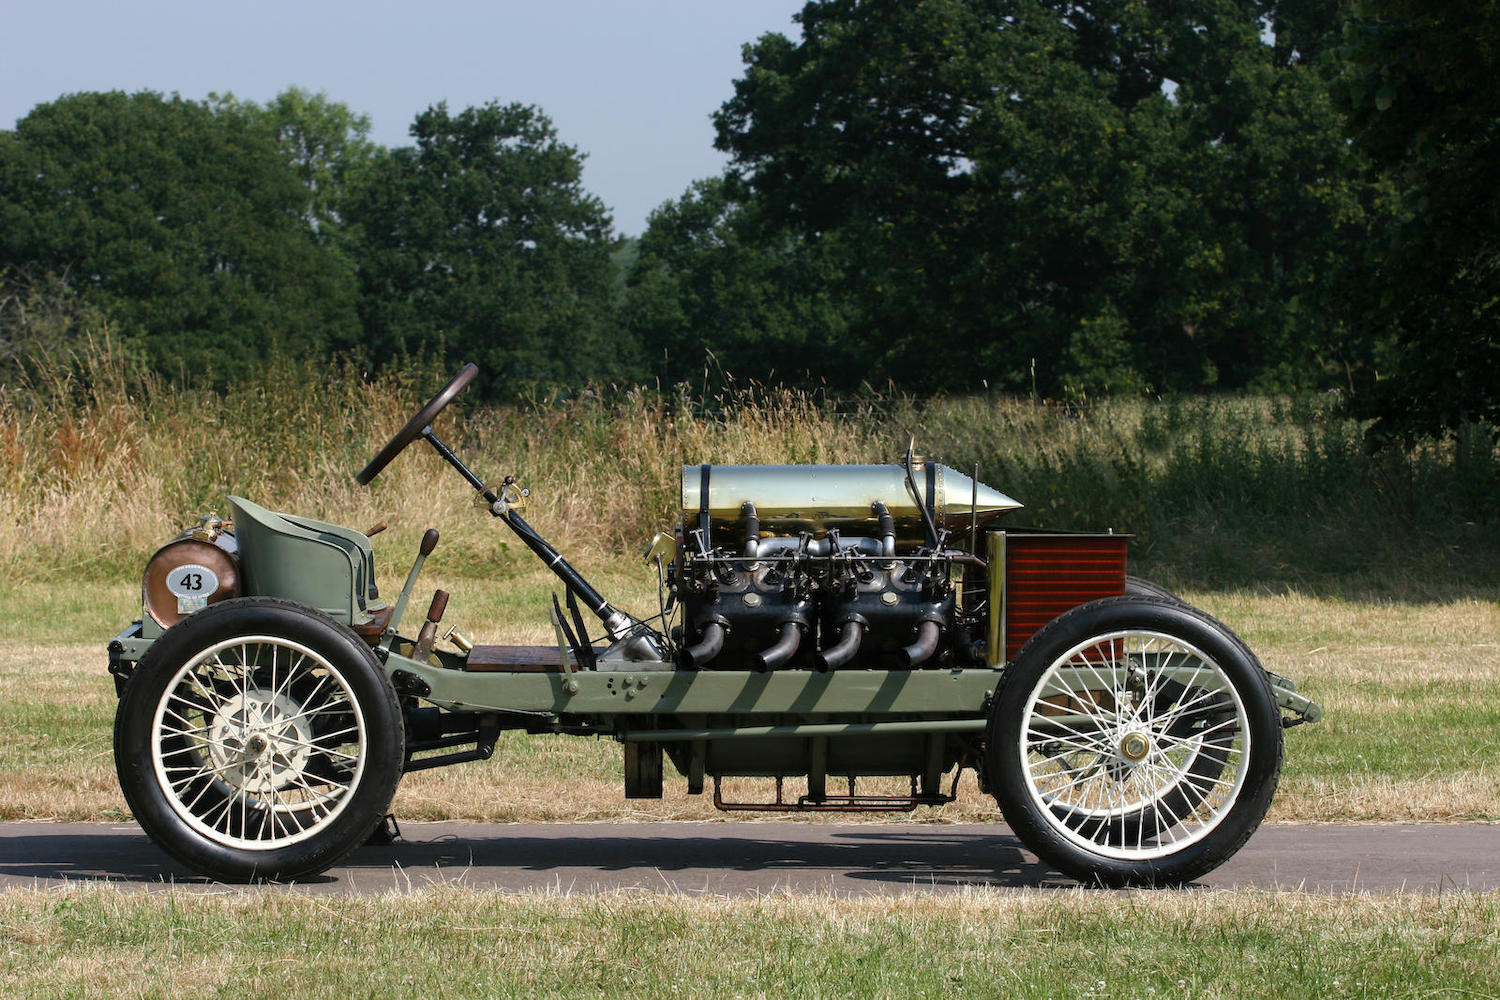 1905 Darracq Sprint Two-Seater side-view